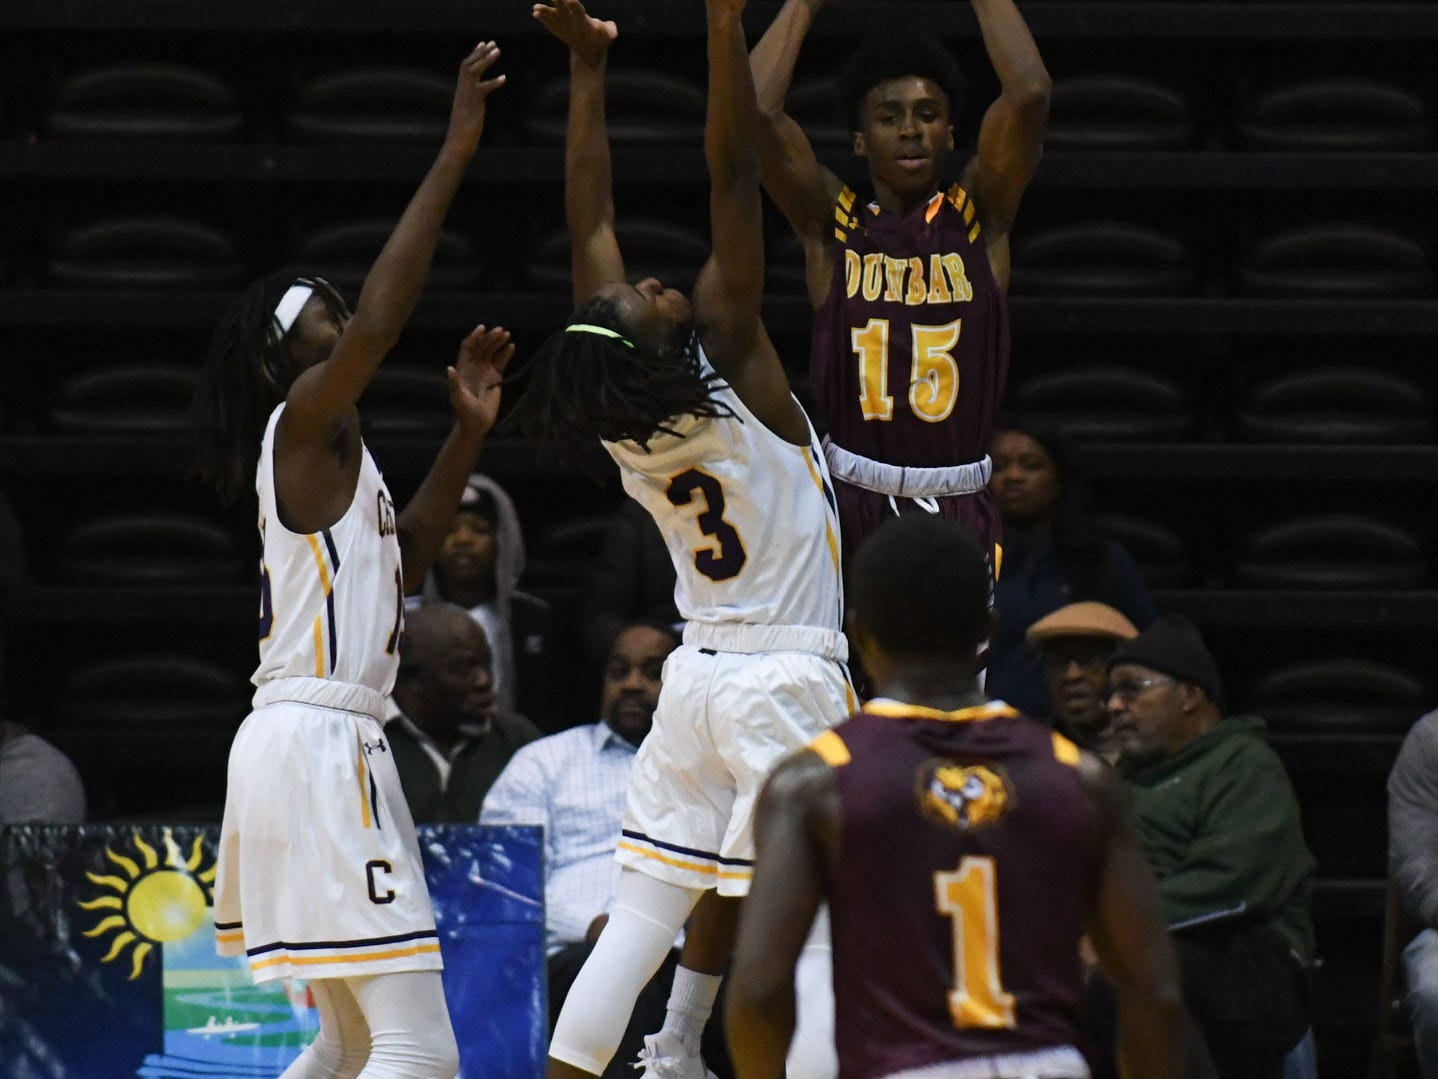 Dunbar's Sammy Davis Jr. is double teammed against Crisfield on Thursday, Dec. 26, 2018 during the Governor's Challenge in Salisbury, Md.